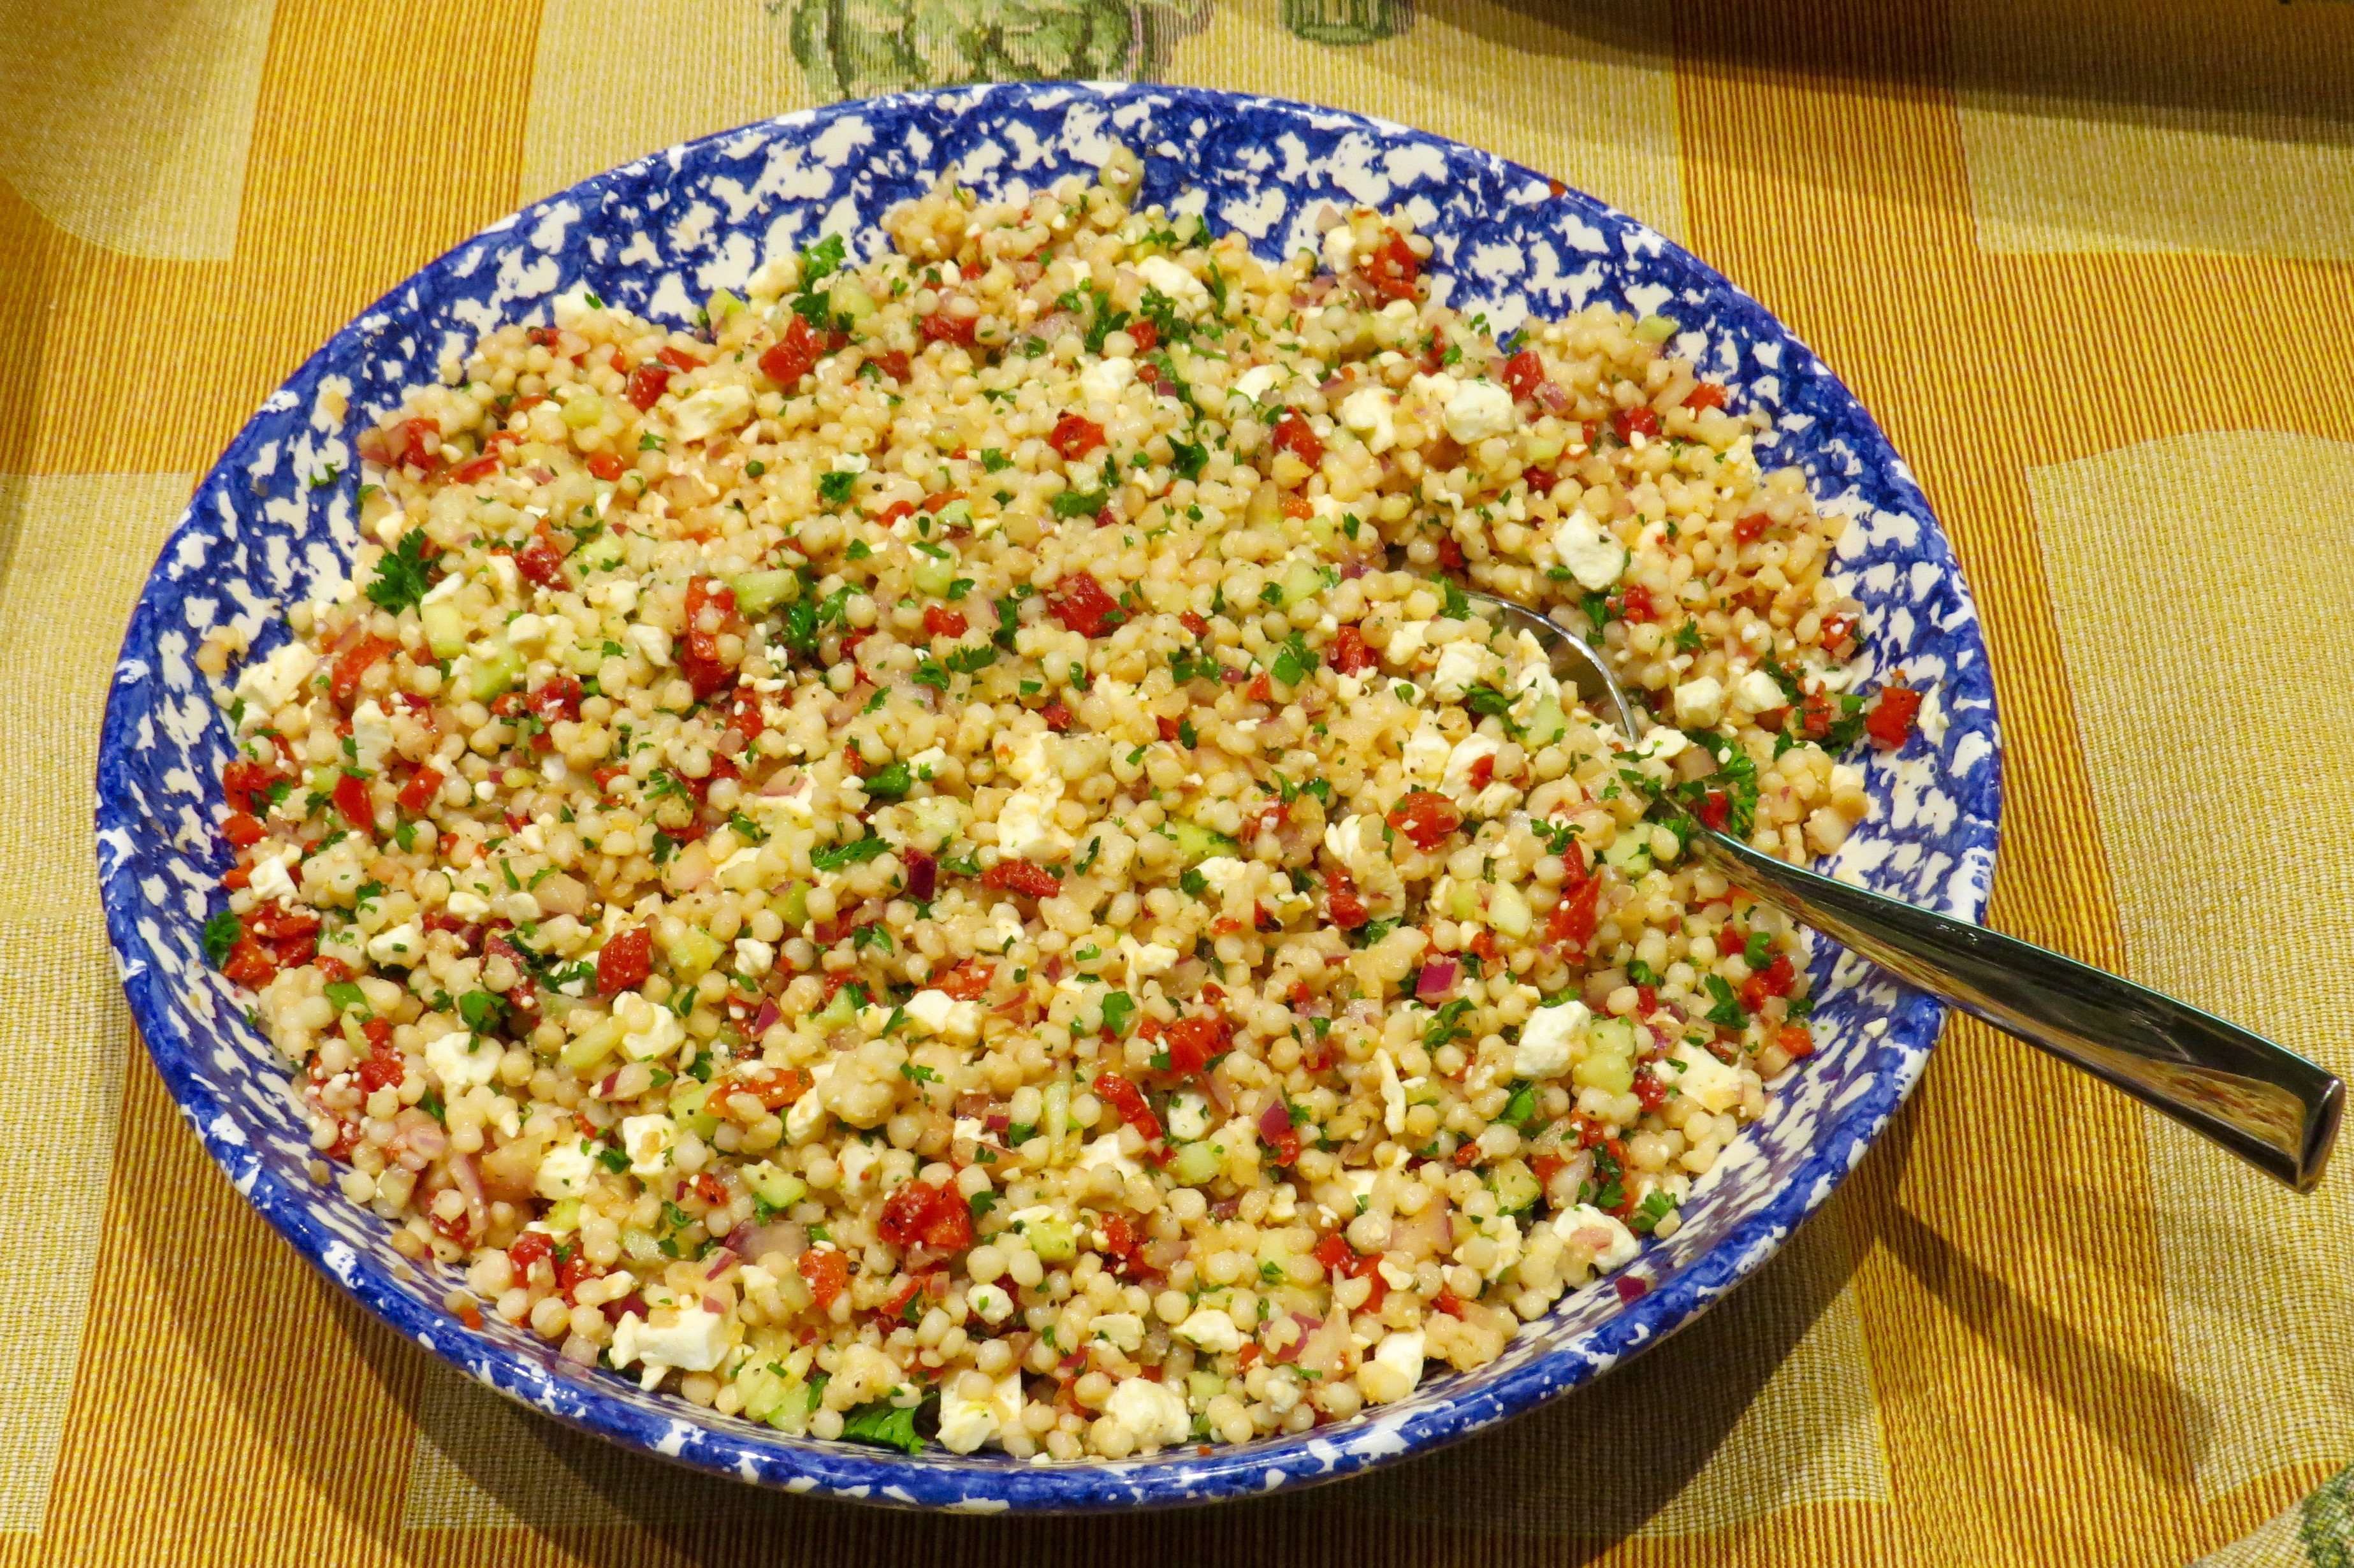 Quick Couscous Salad with Peppers and Feta is perfect to have for lunch, take on a picnic, or share at a potluck supper.